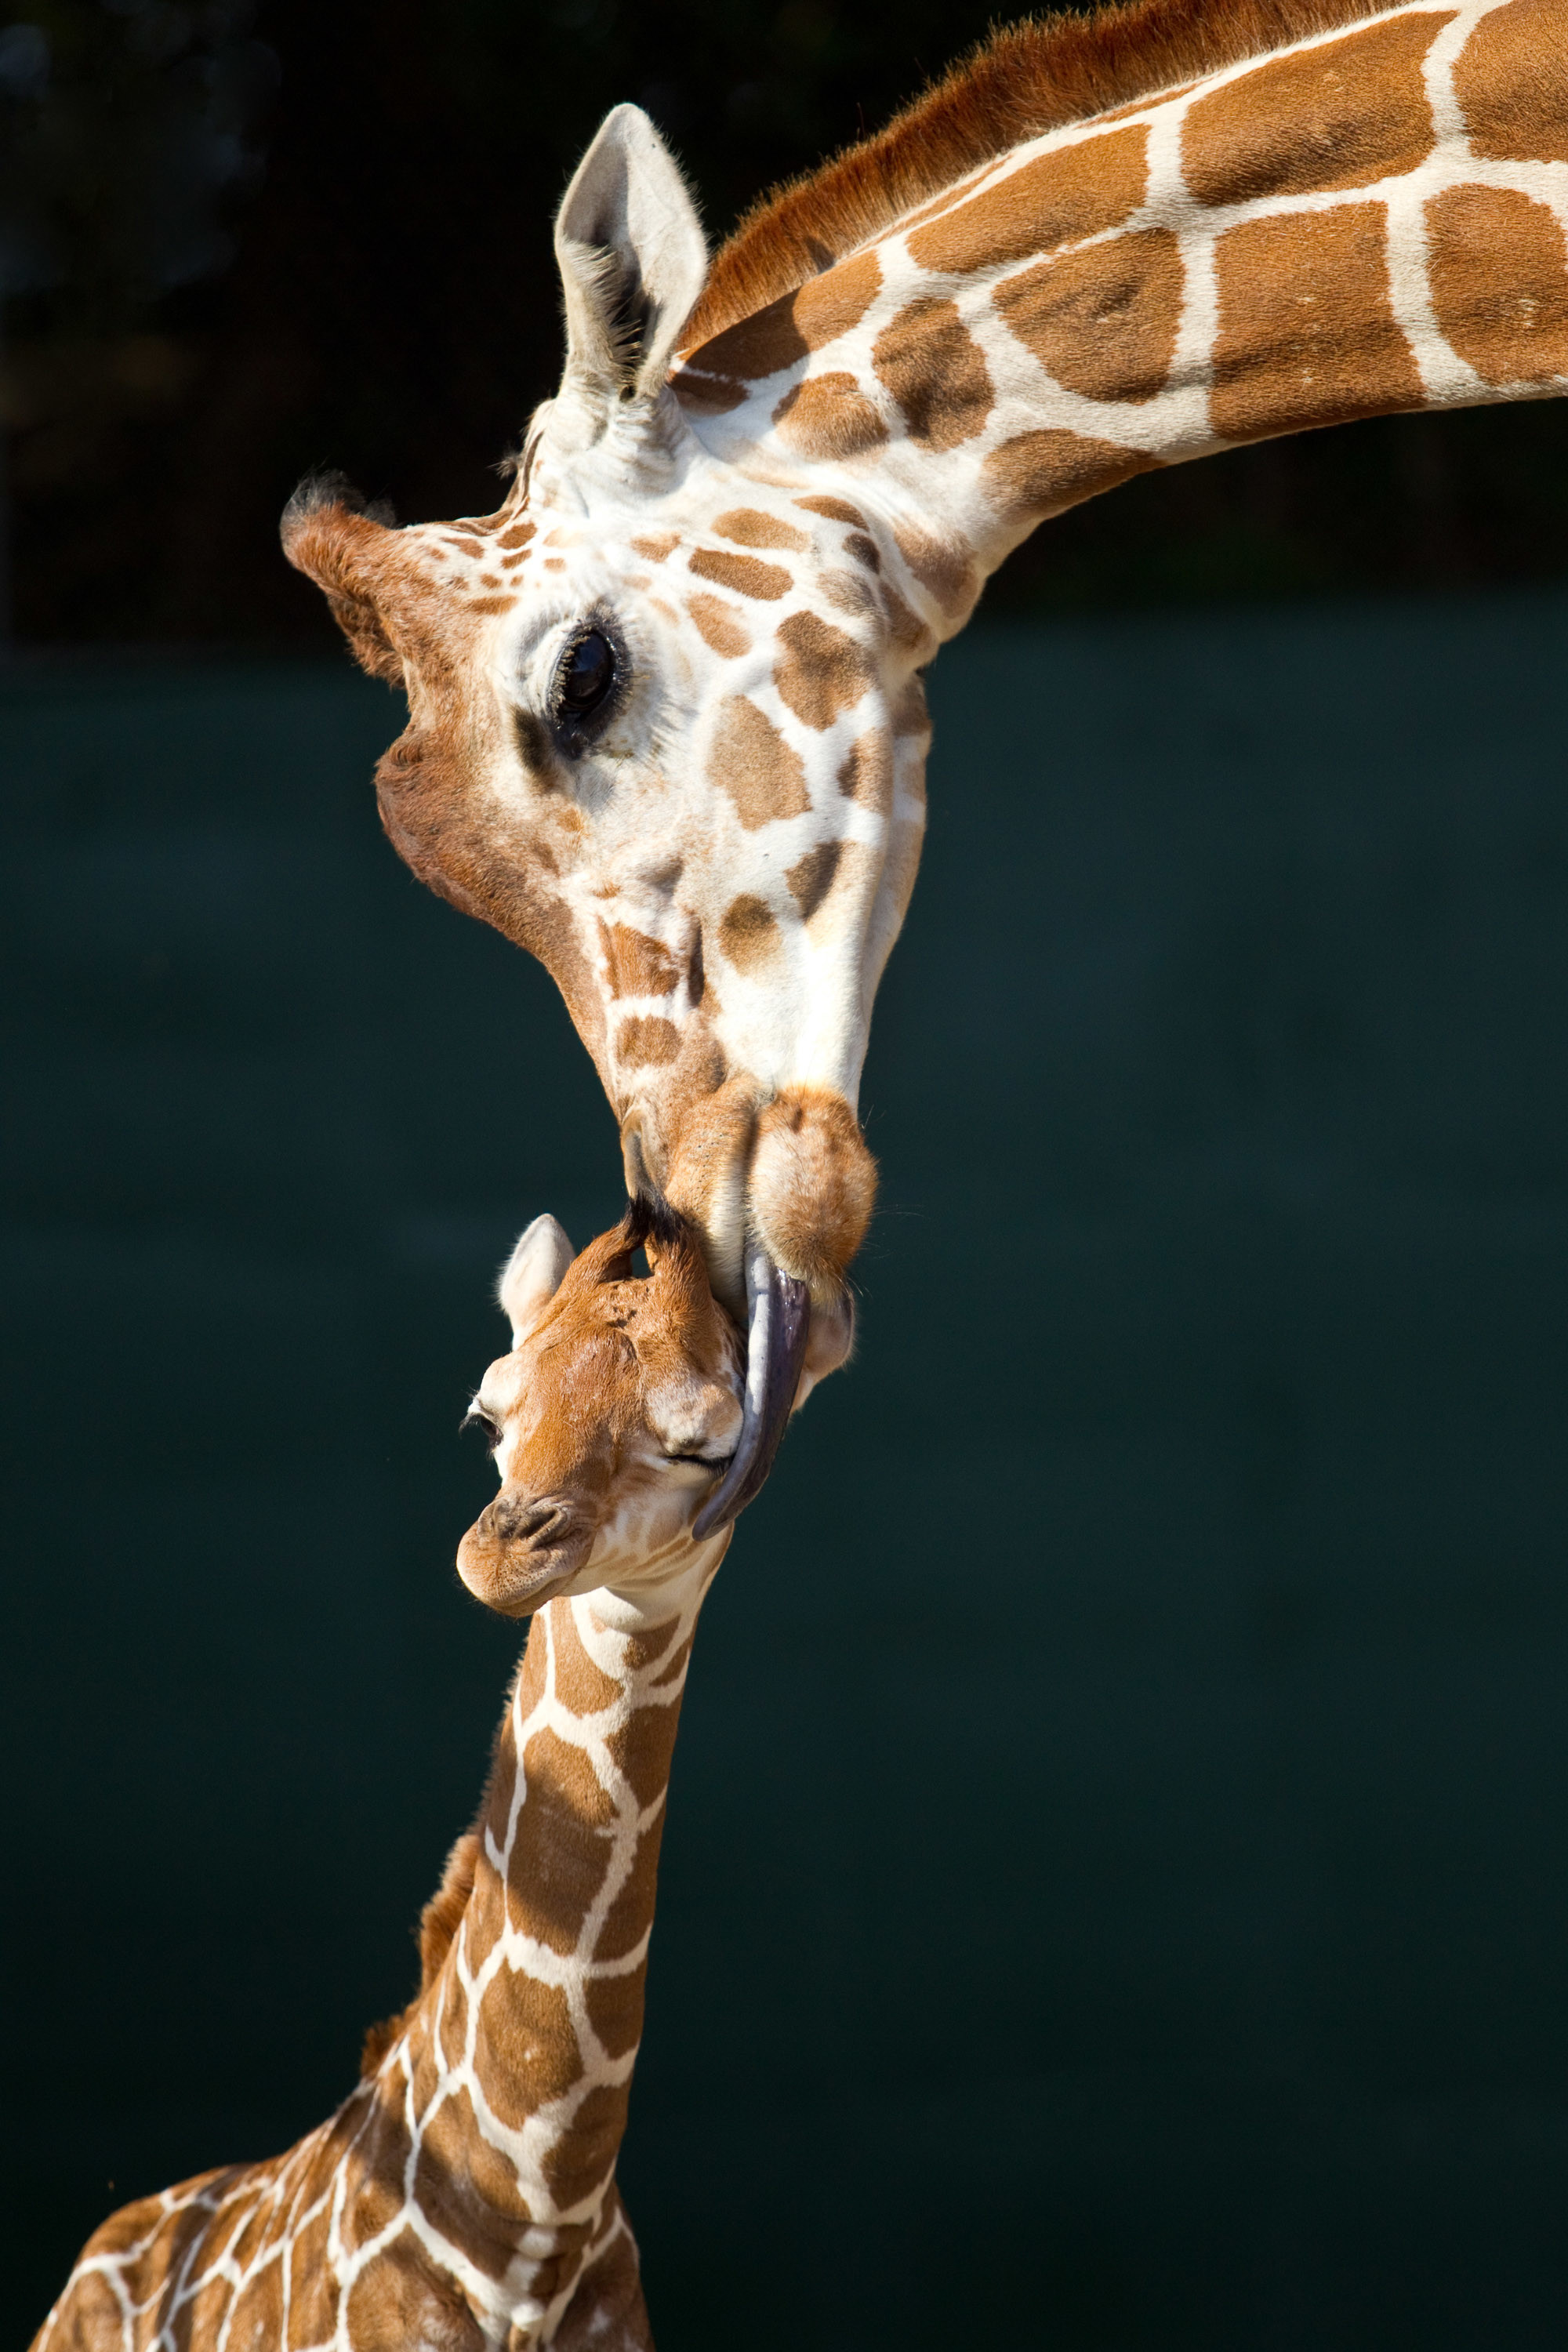 Wonderful-Baby-Giraffe-and-Mom-HD-Wallpaper.jpg 2,000